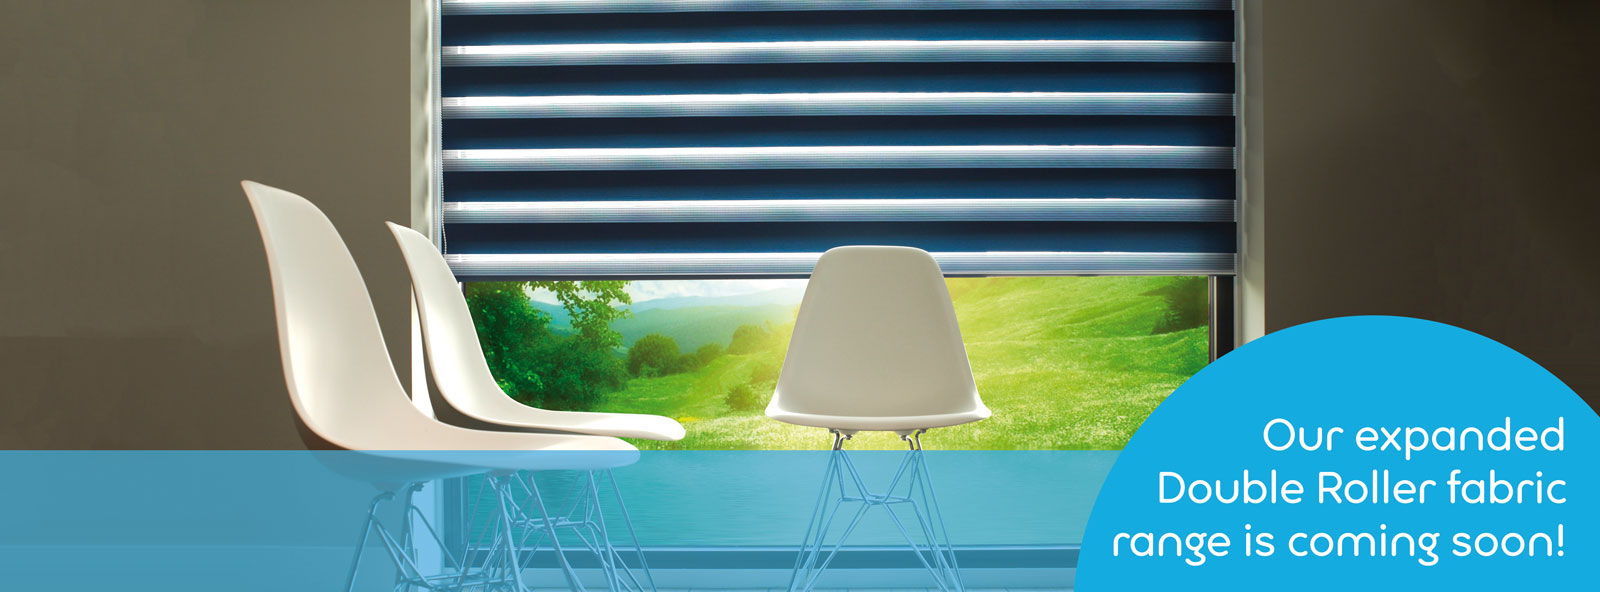 Our expanded fabric range for Double Roller Blinds is coming soon!